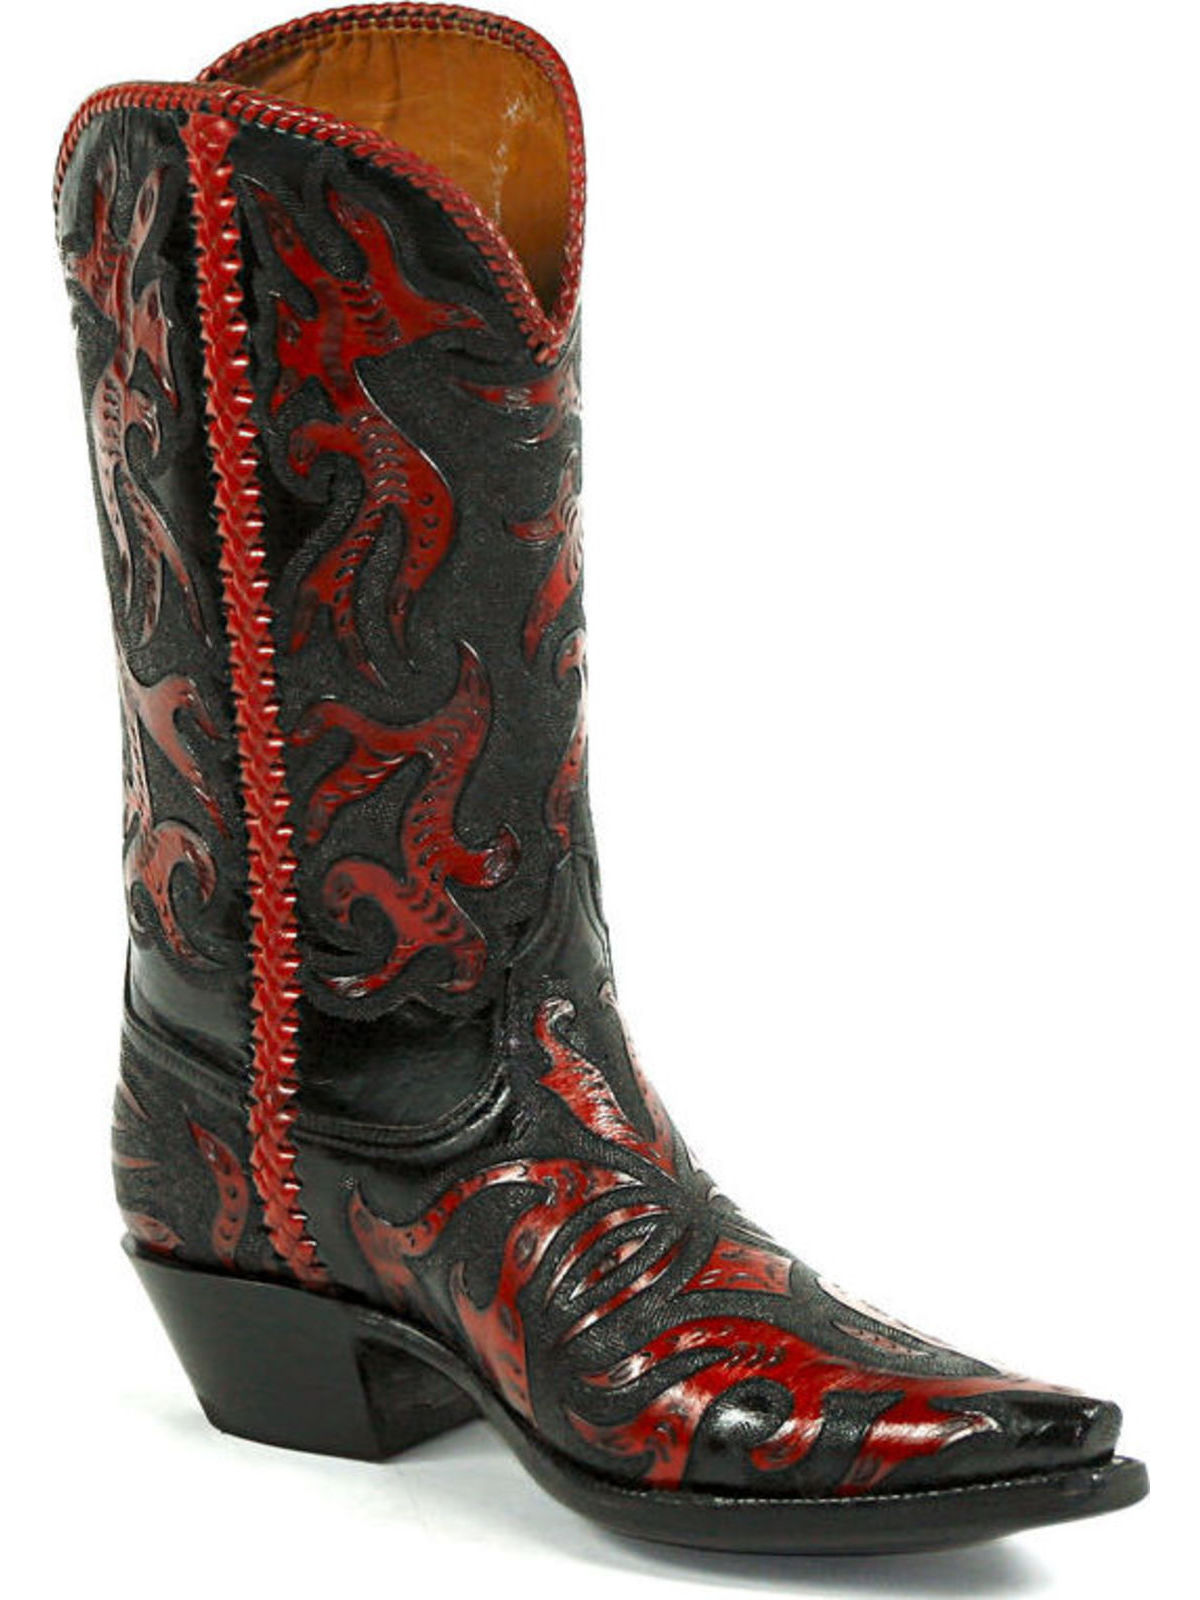 Bootamerica Black Jack Boots Full Tooled Withlace Hand